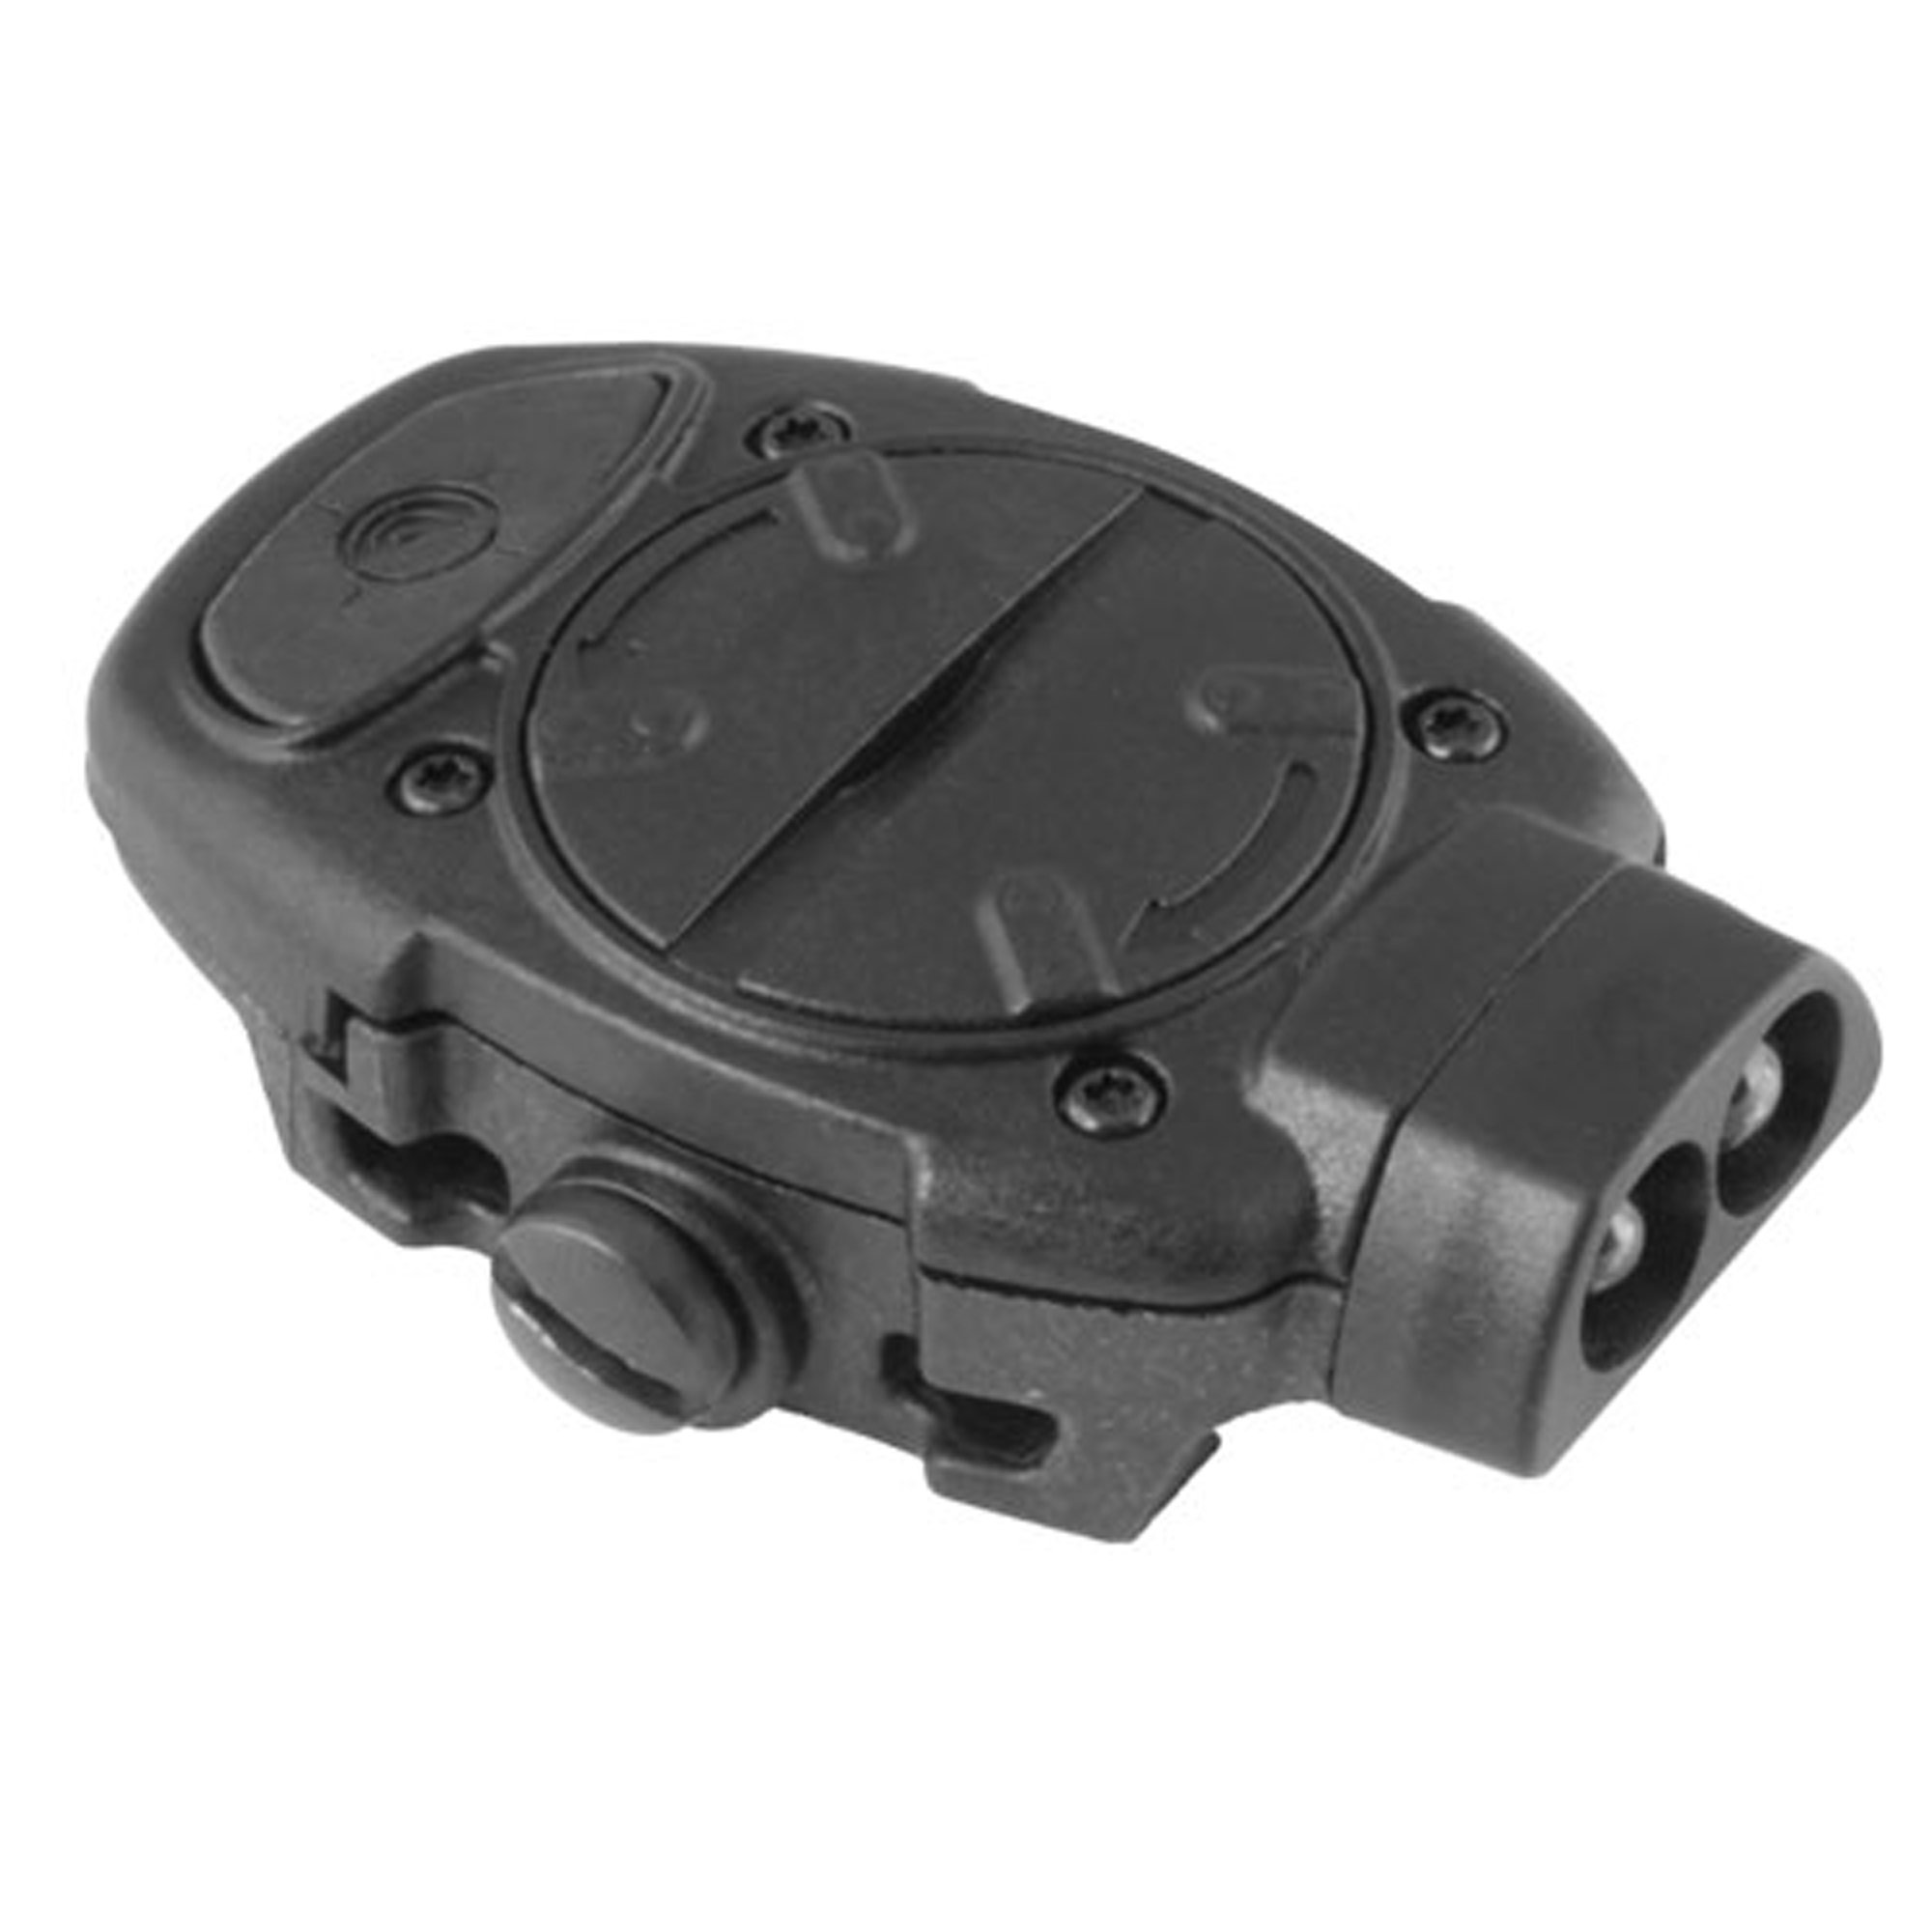 Mission First Tactical Torch Back Up Picatinny Mounted IR/Red Light, Black